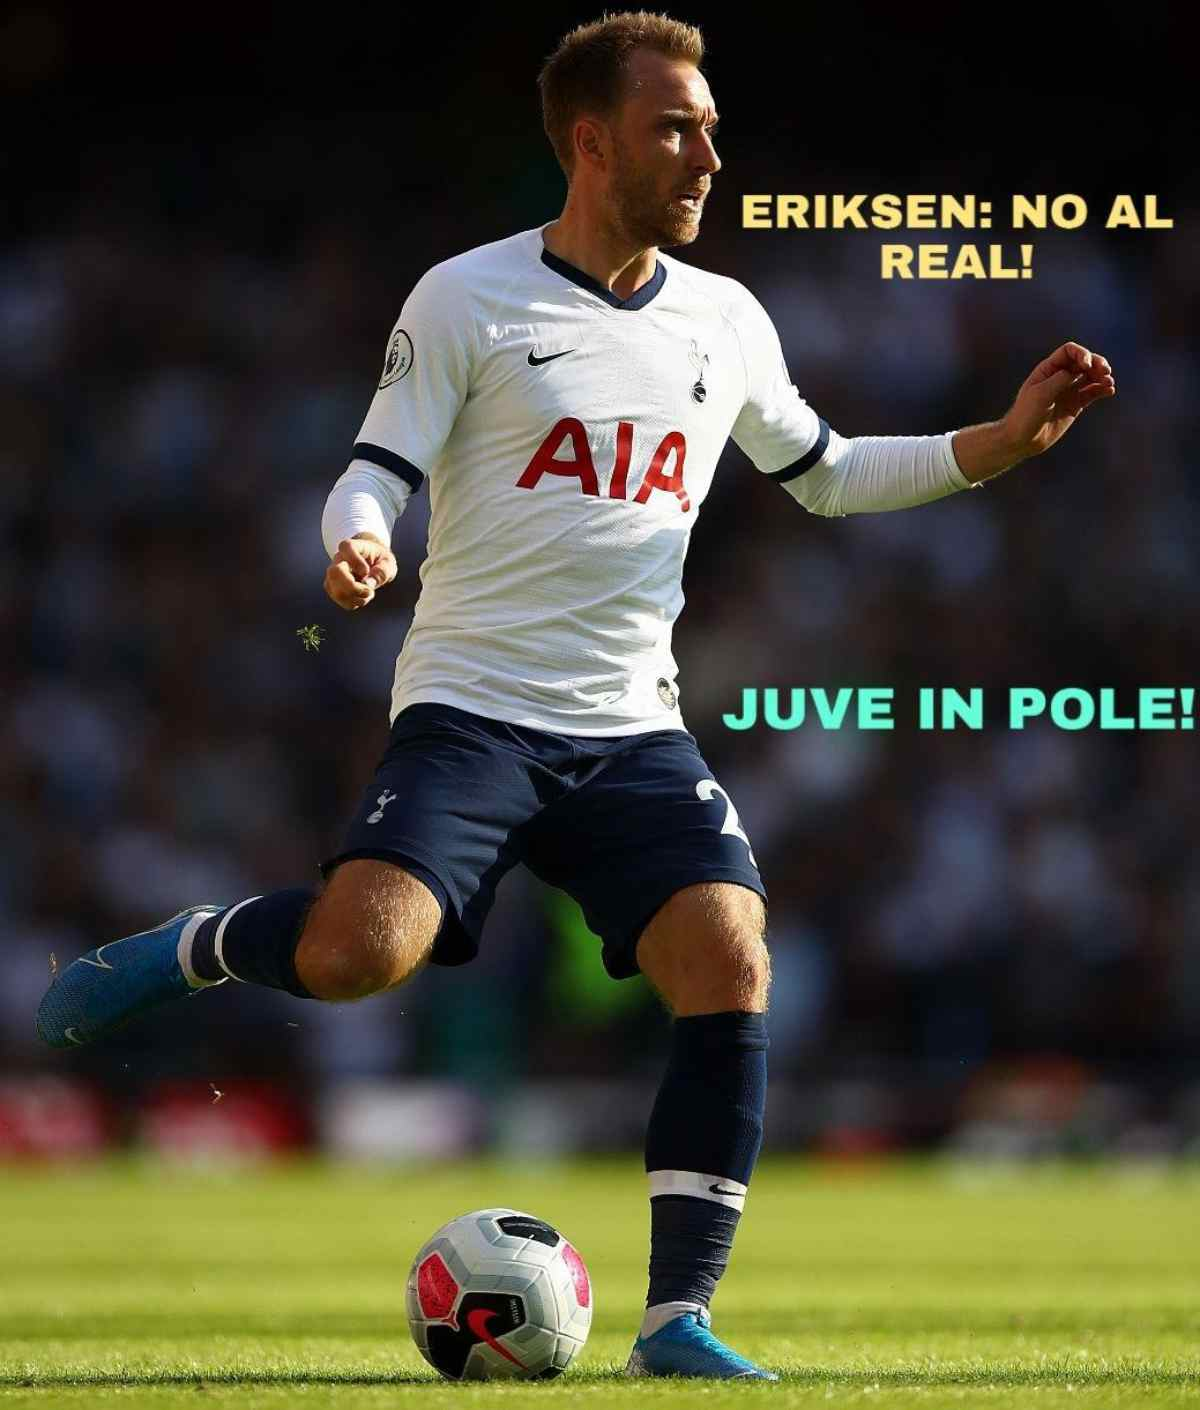 Eriksen: no al Real, Juve in pole